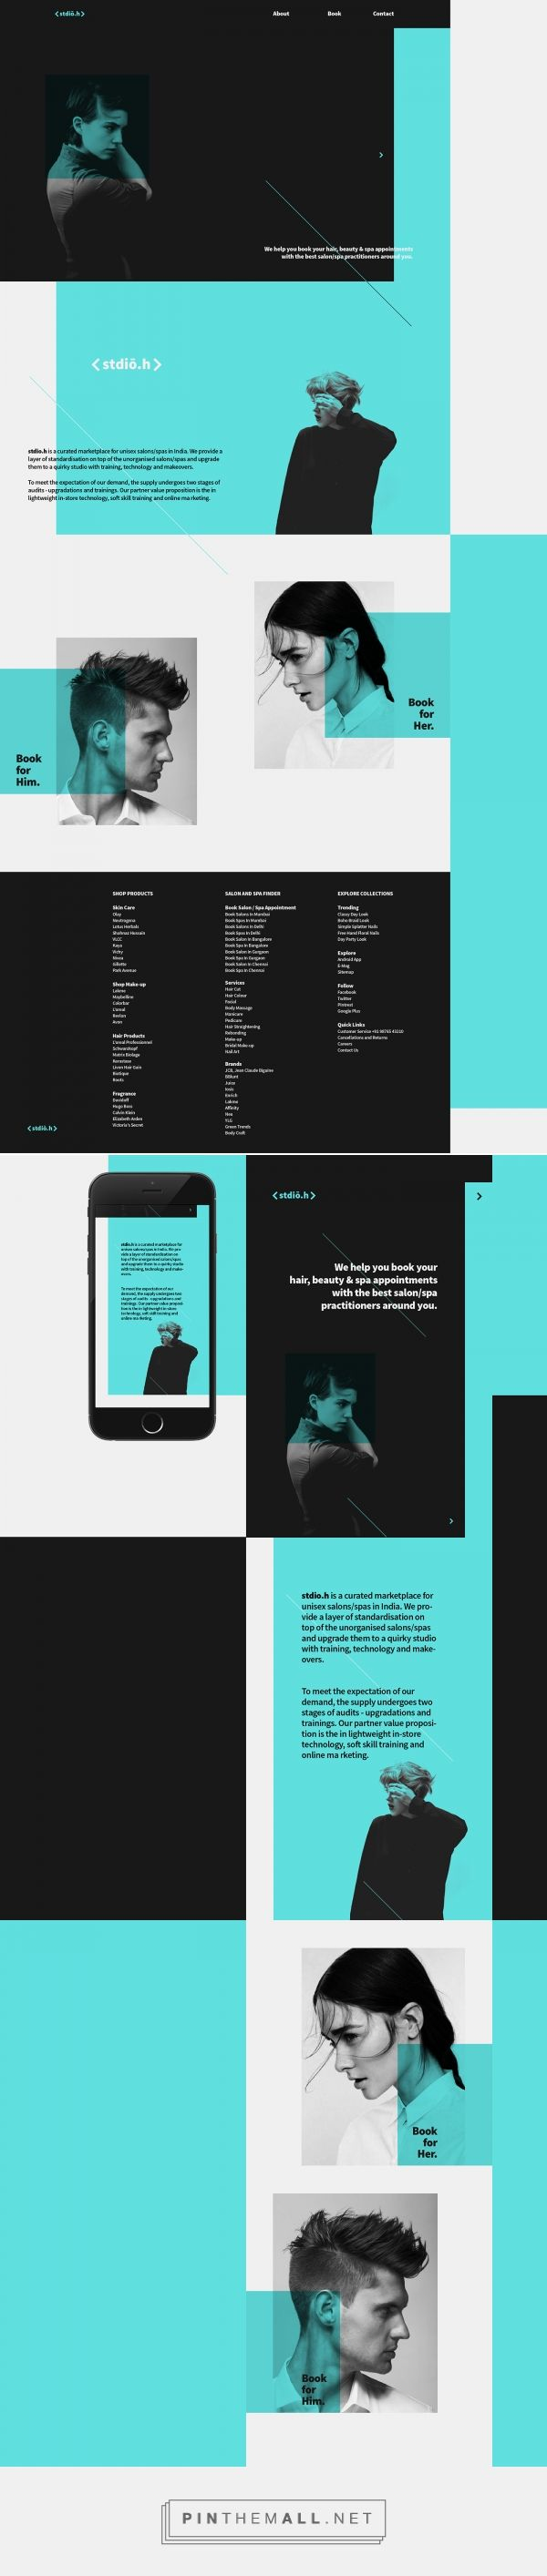 Stdio.h Salon Web Design By Utkarsh Raut Part 70